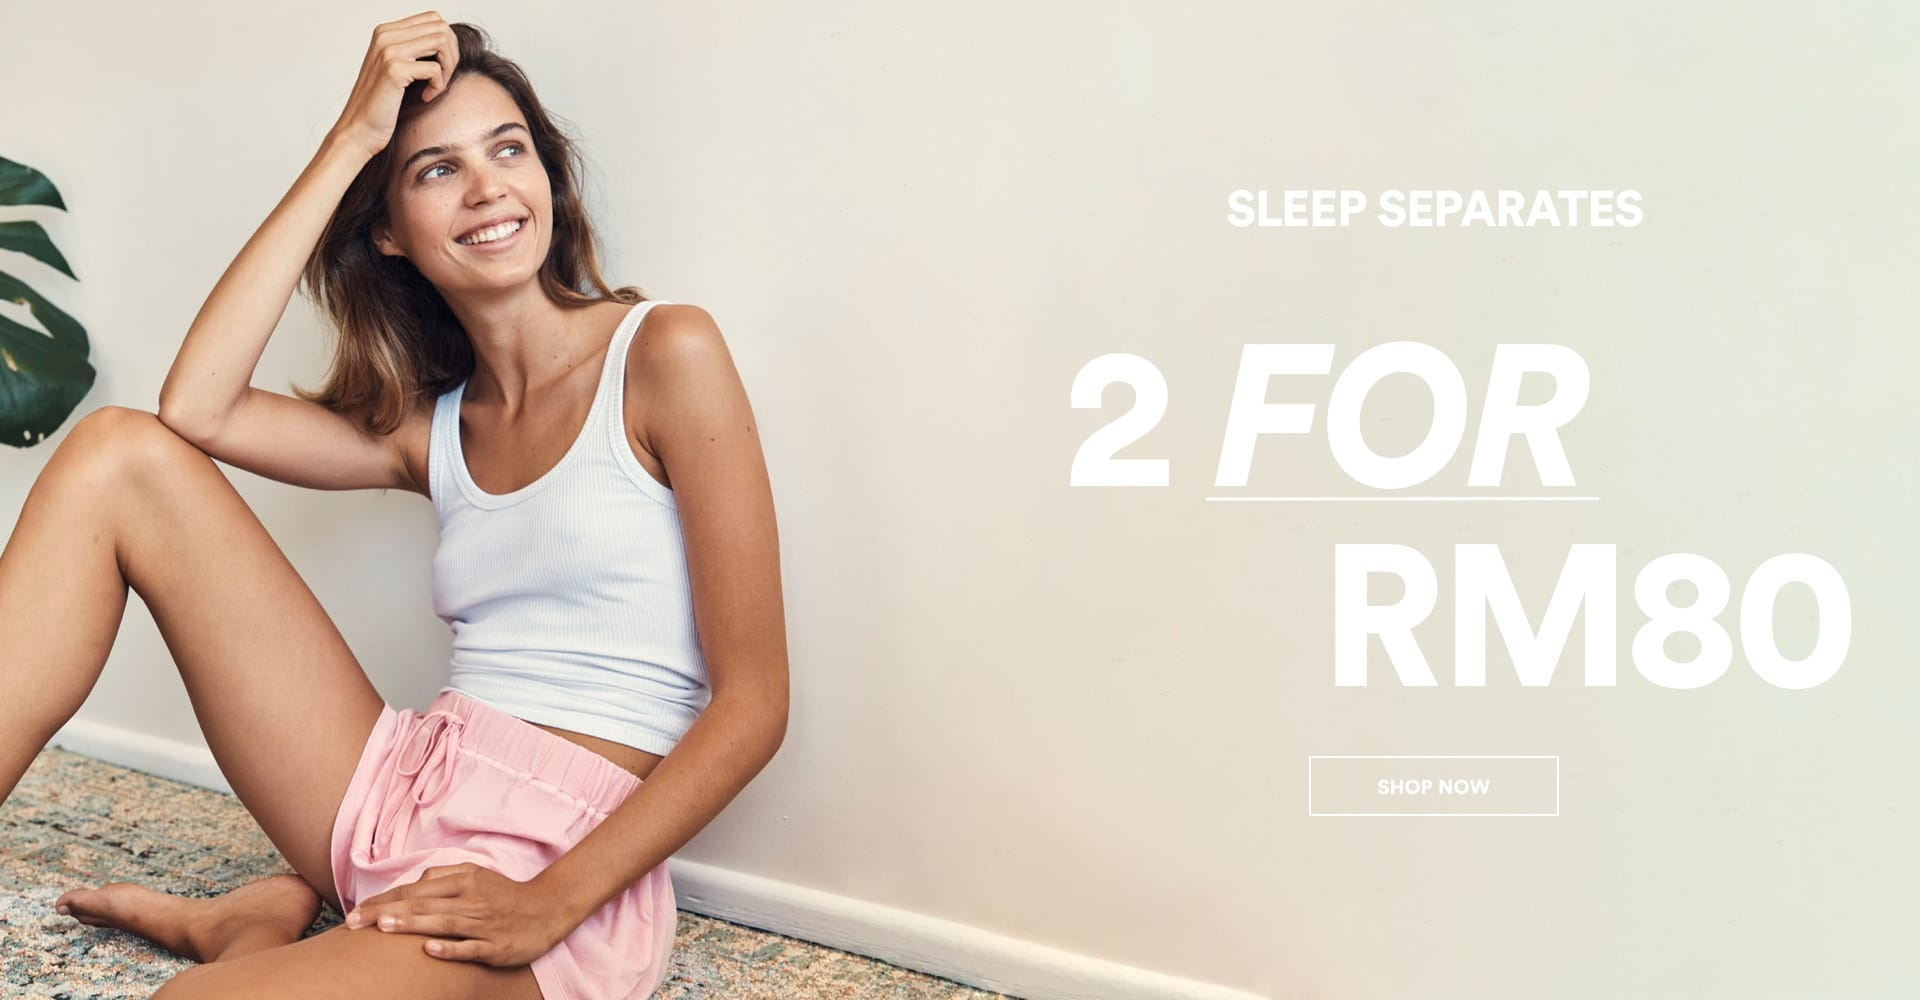 Sleep Separates 2 for RM80. Click to Shop